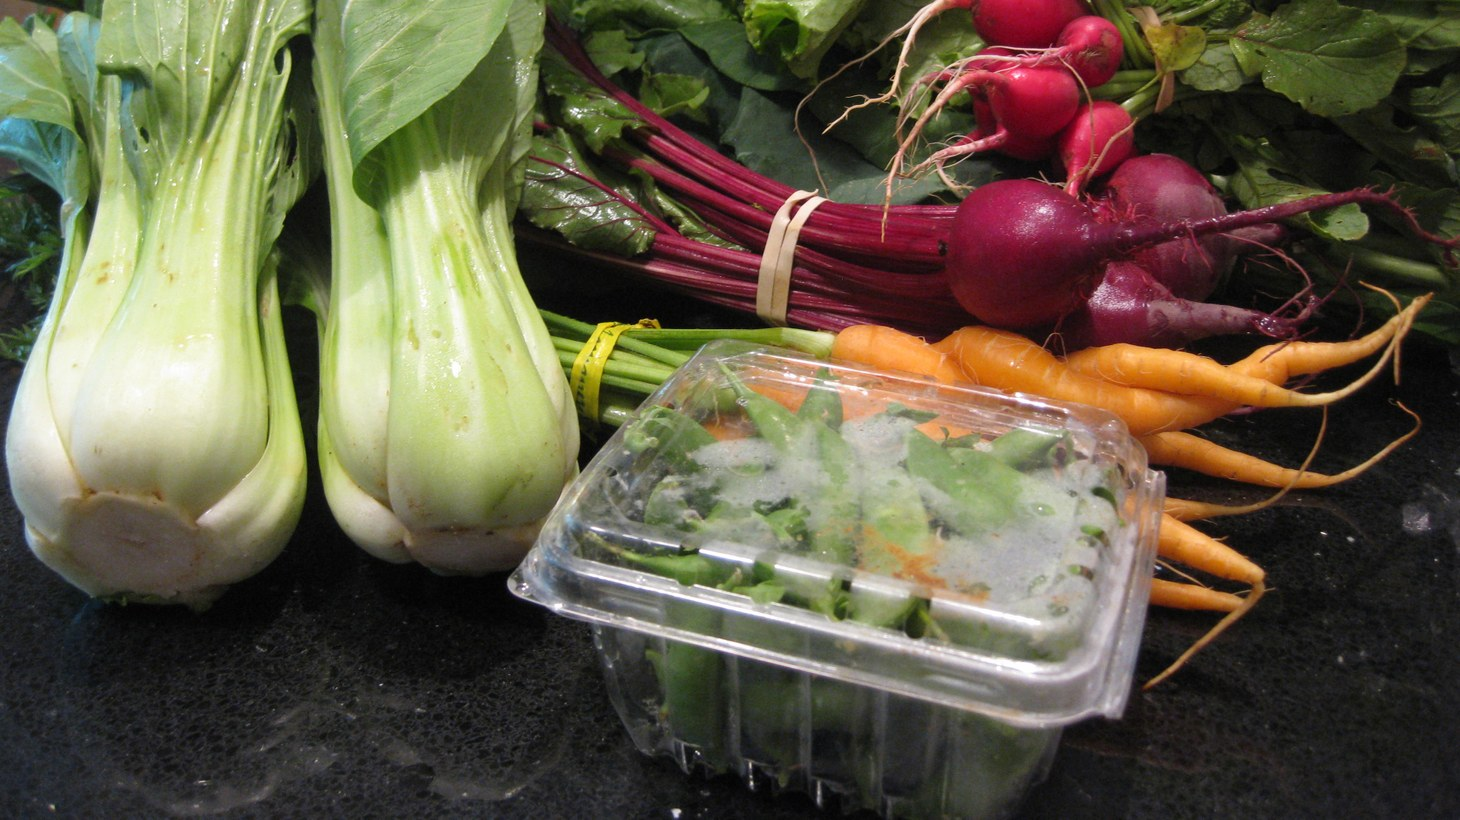 All sorts of vegetables come in a community-supported agriculture (CSA) box.